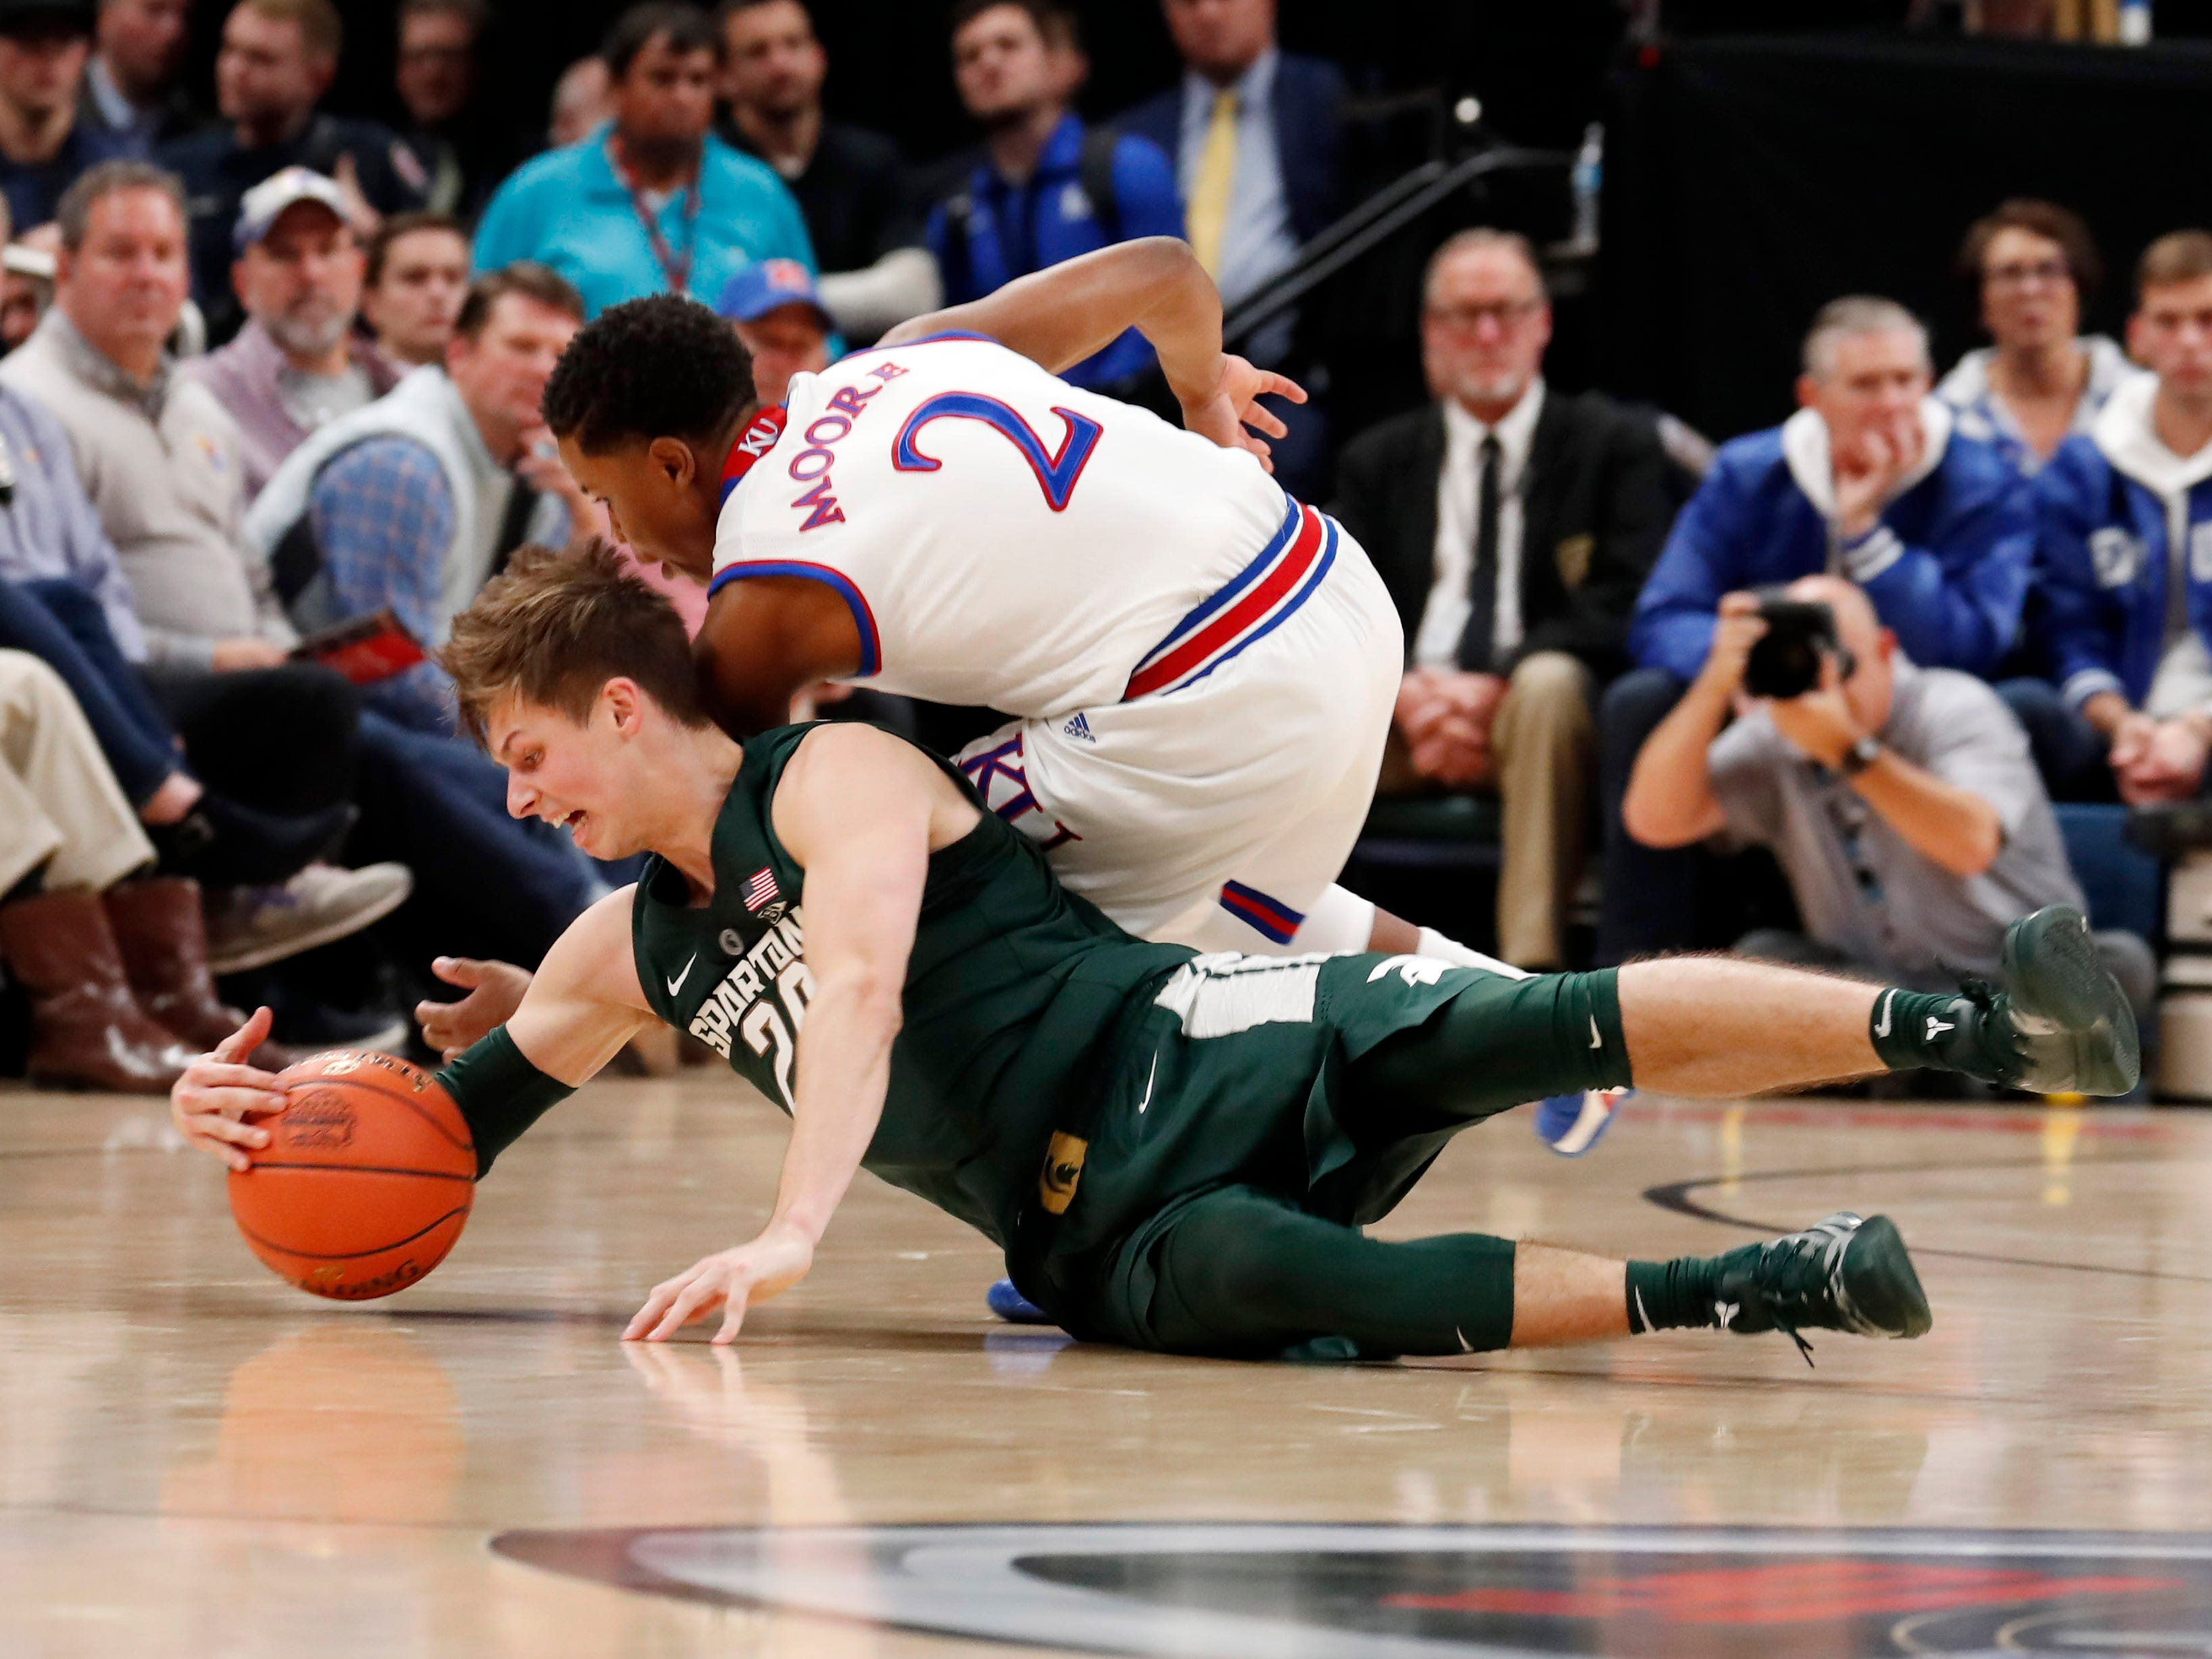 Michigan State Spartans guard Matt McQuaid (20) scrambles for a loose ball against Kansas Jayhawks guard Charlie Moore (2) in the first half during the Champions Classic at Bankers Life Fieldhouse.